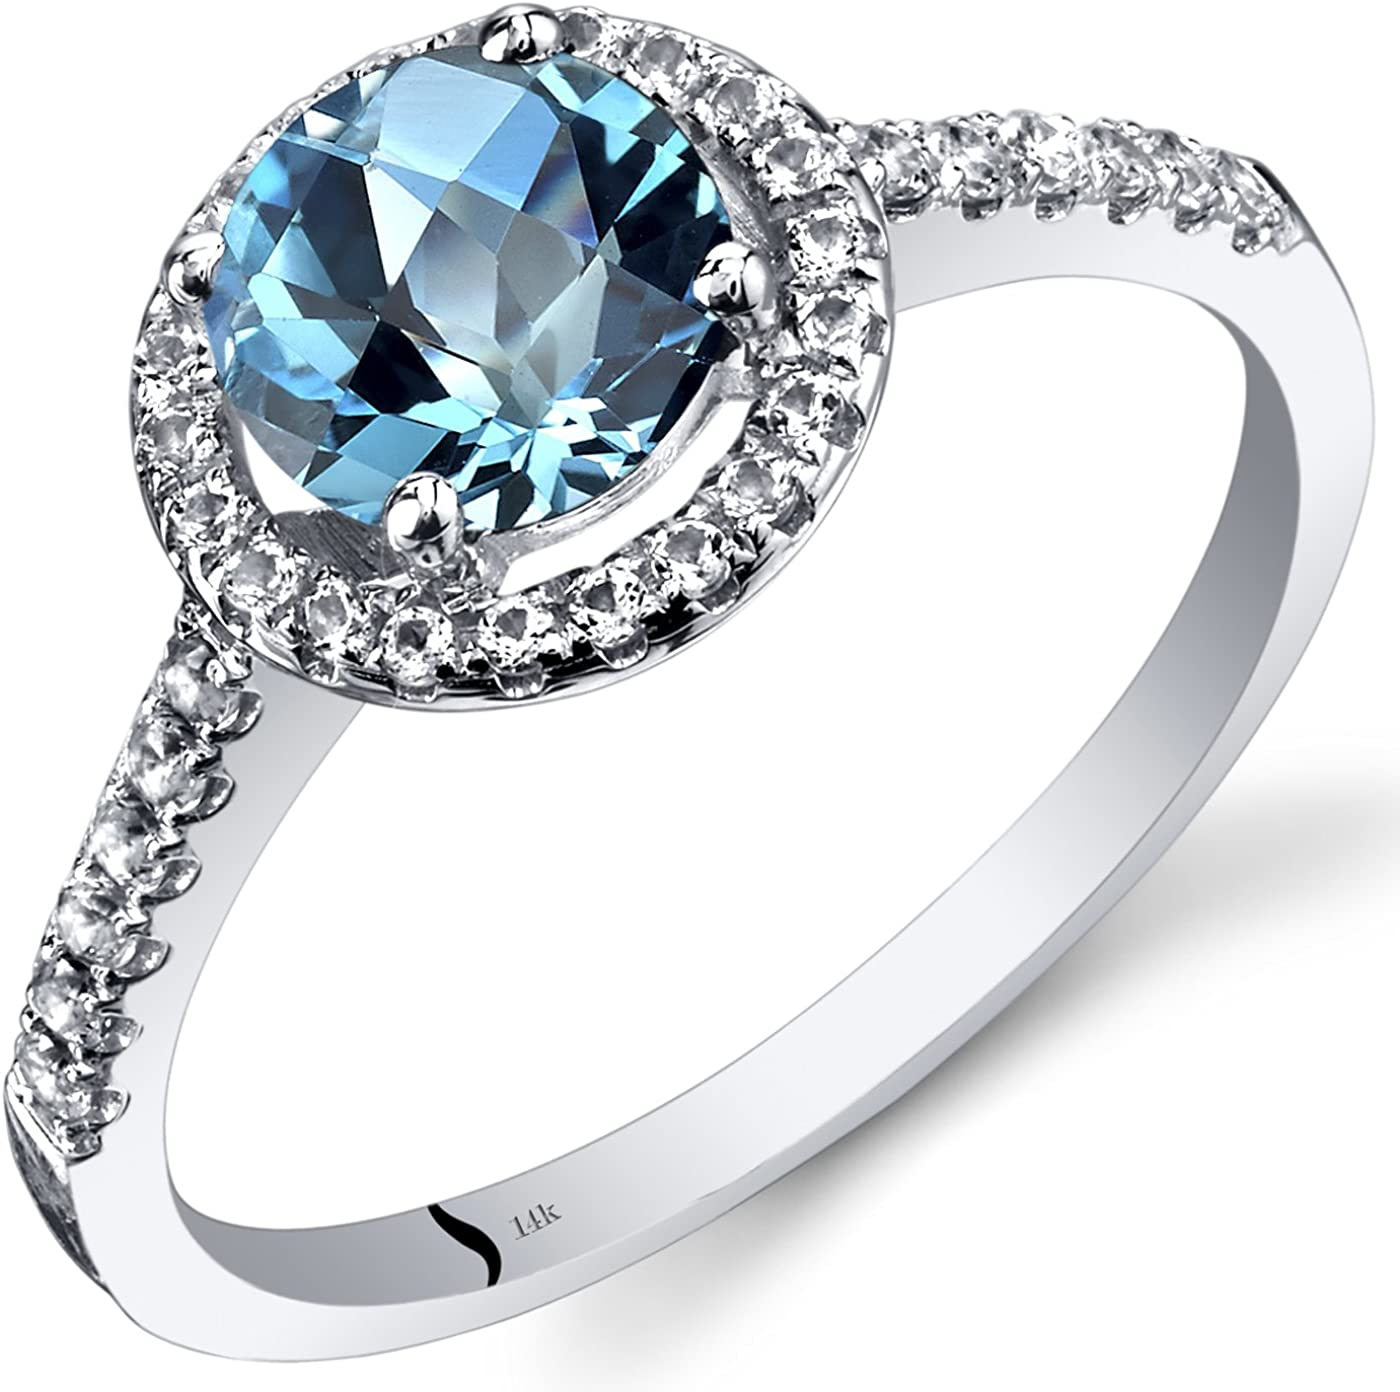 Amazon Com 14k White Gold Swiss Blue Topaz Halo Ring Round Checkerboard Cut 1 25 Carats Sizes 5 To 9 Jewelry